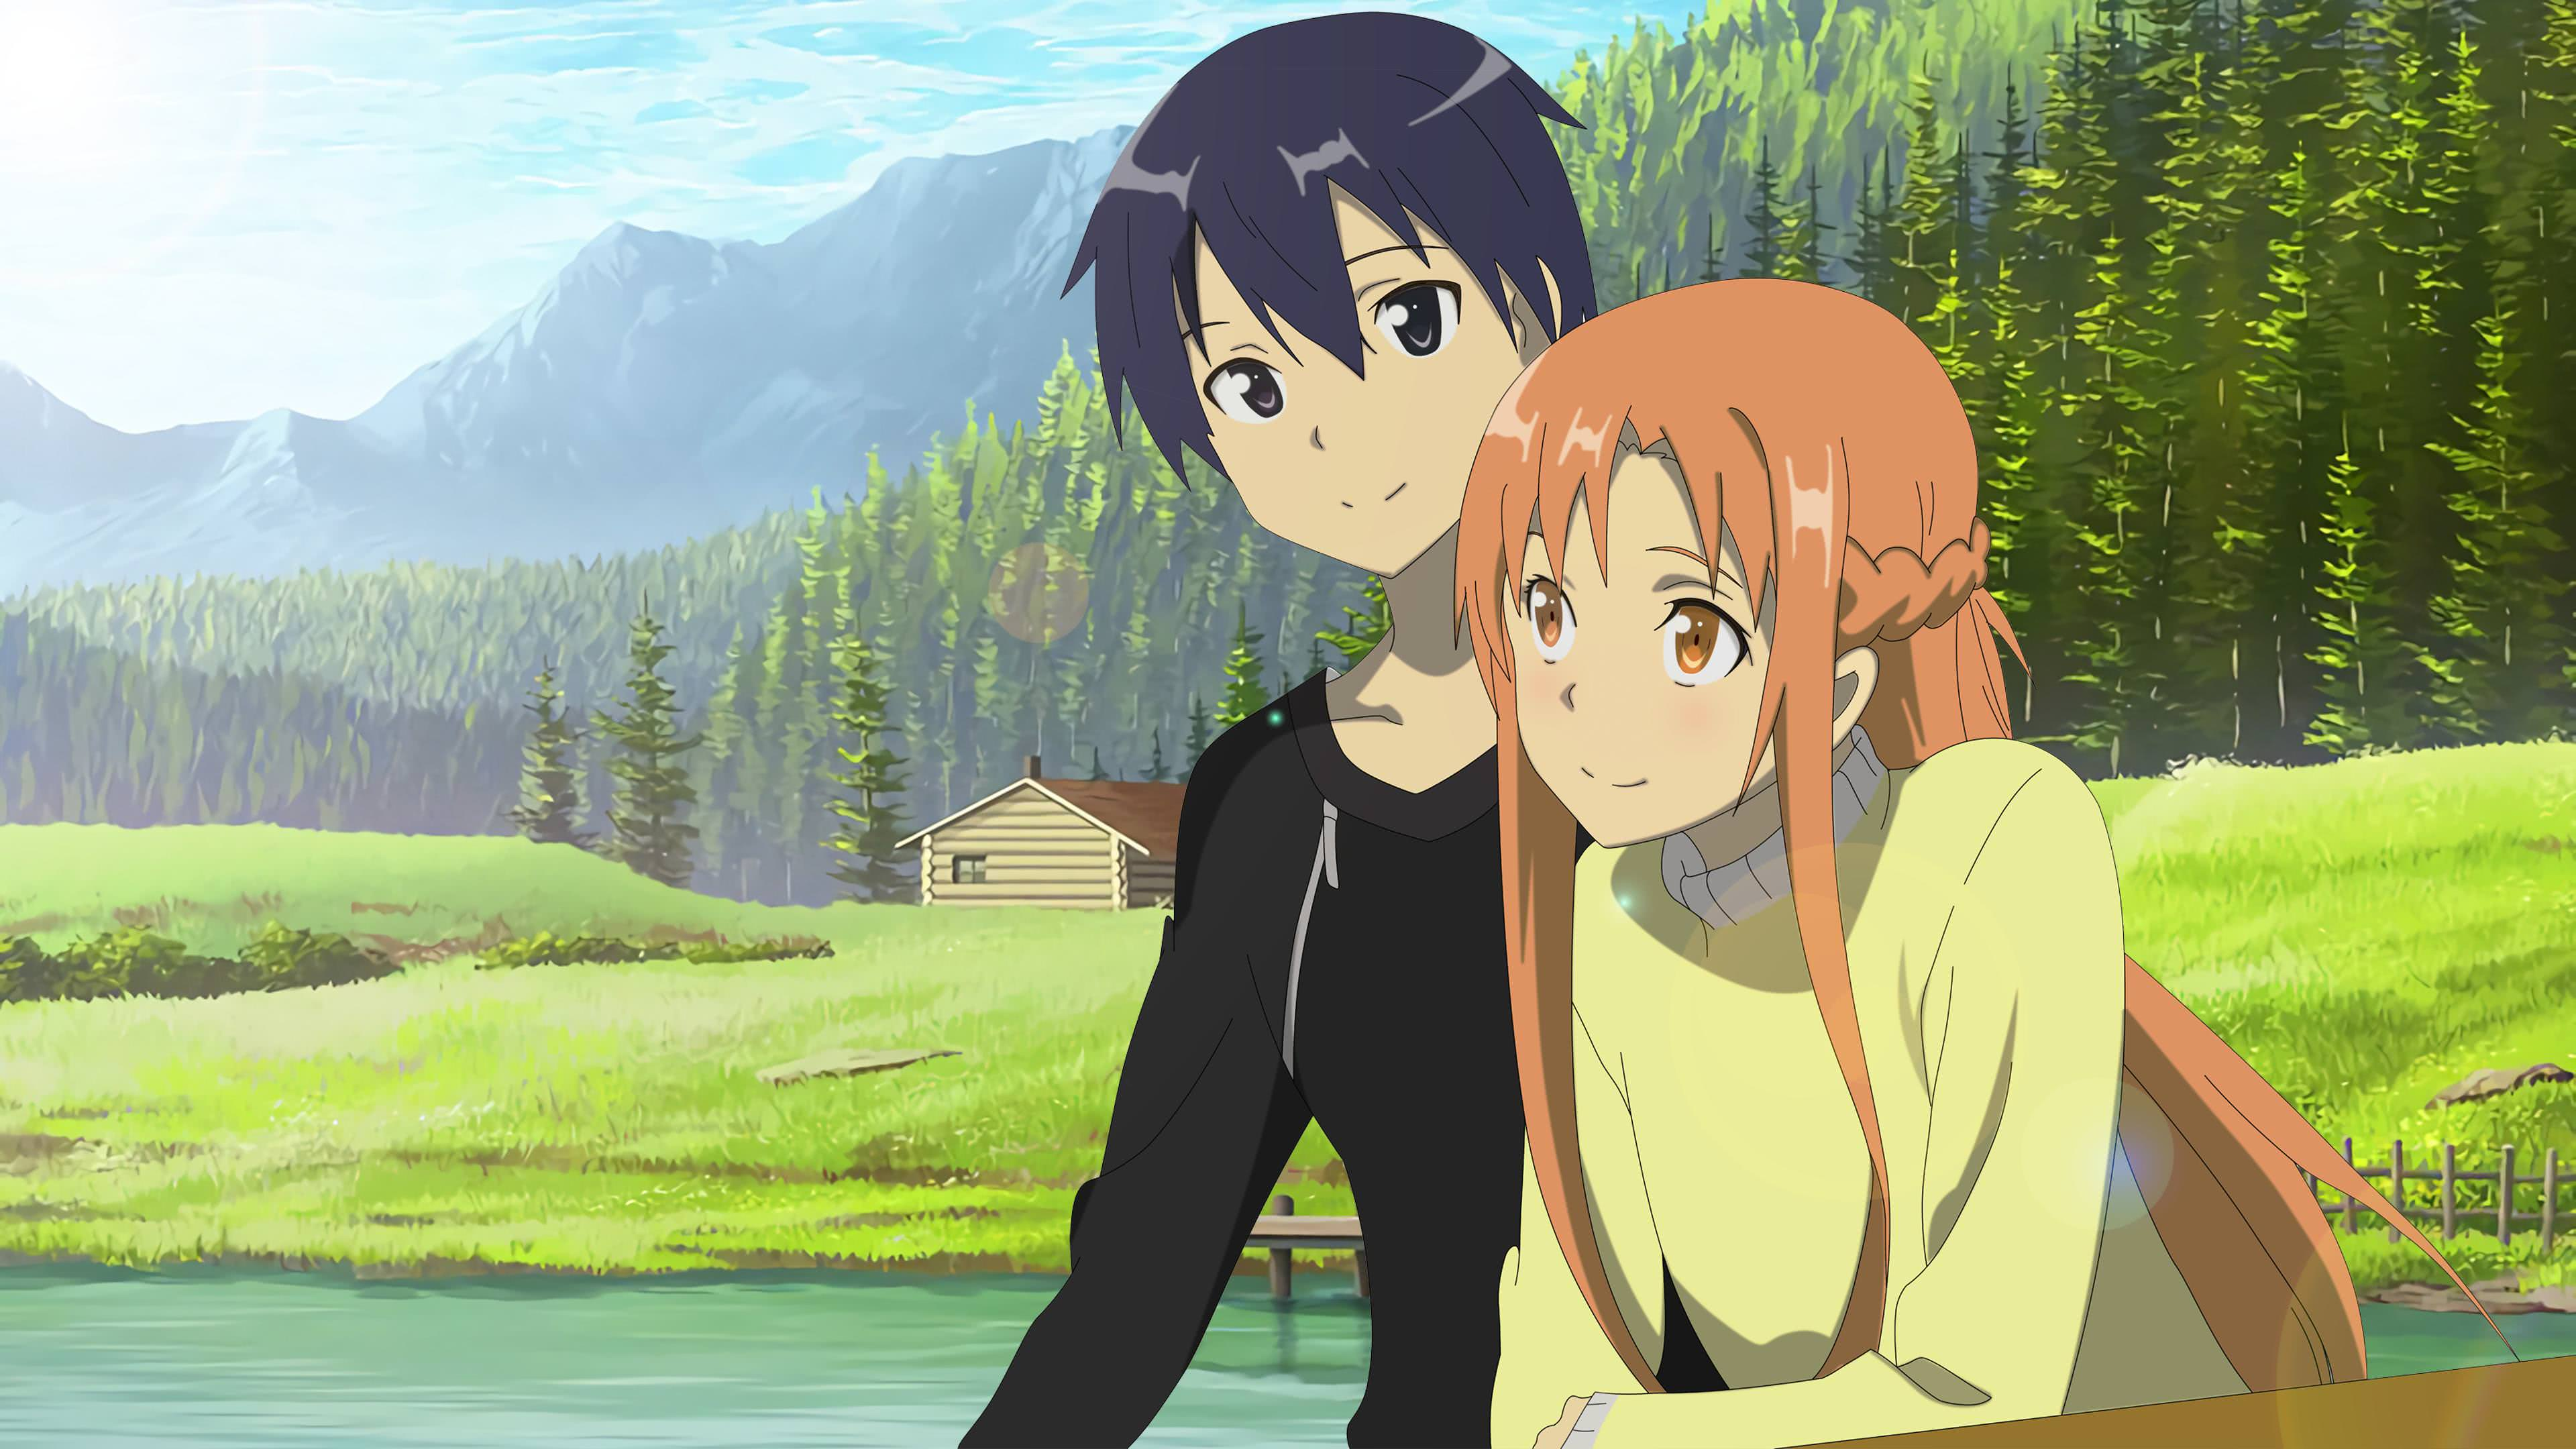 Download wallpaper from anime Sword Art Online II with tags Asuna